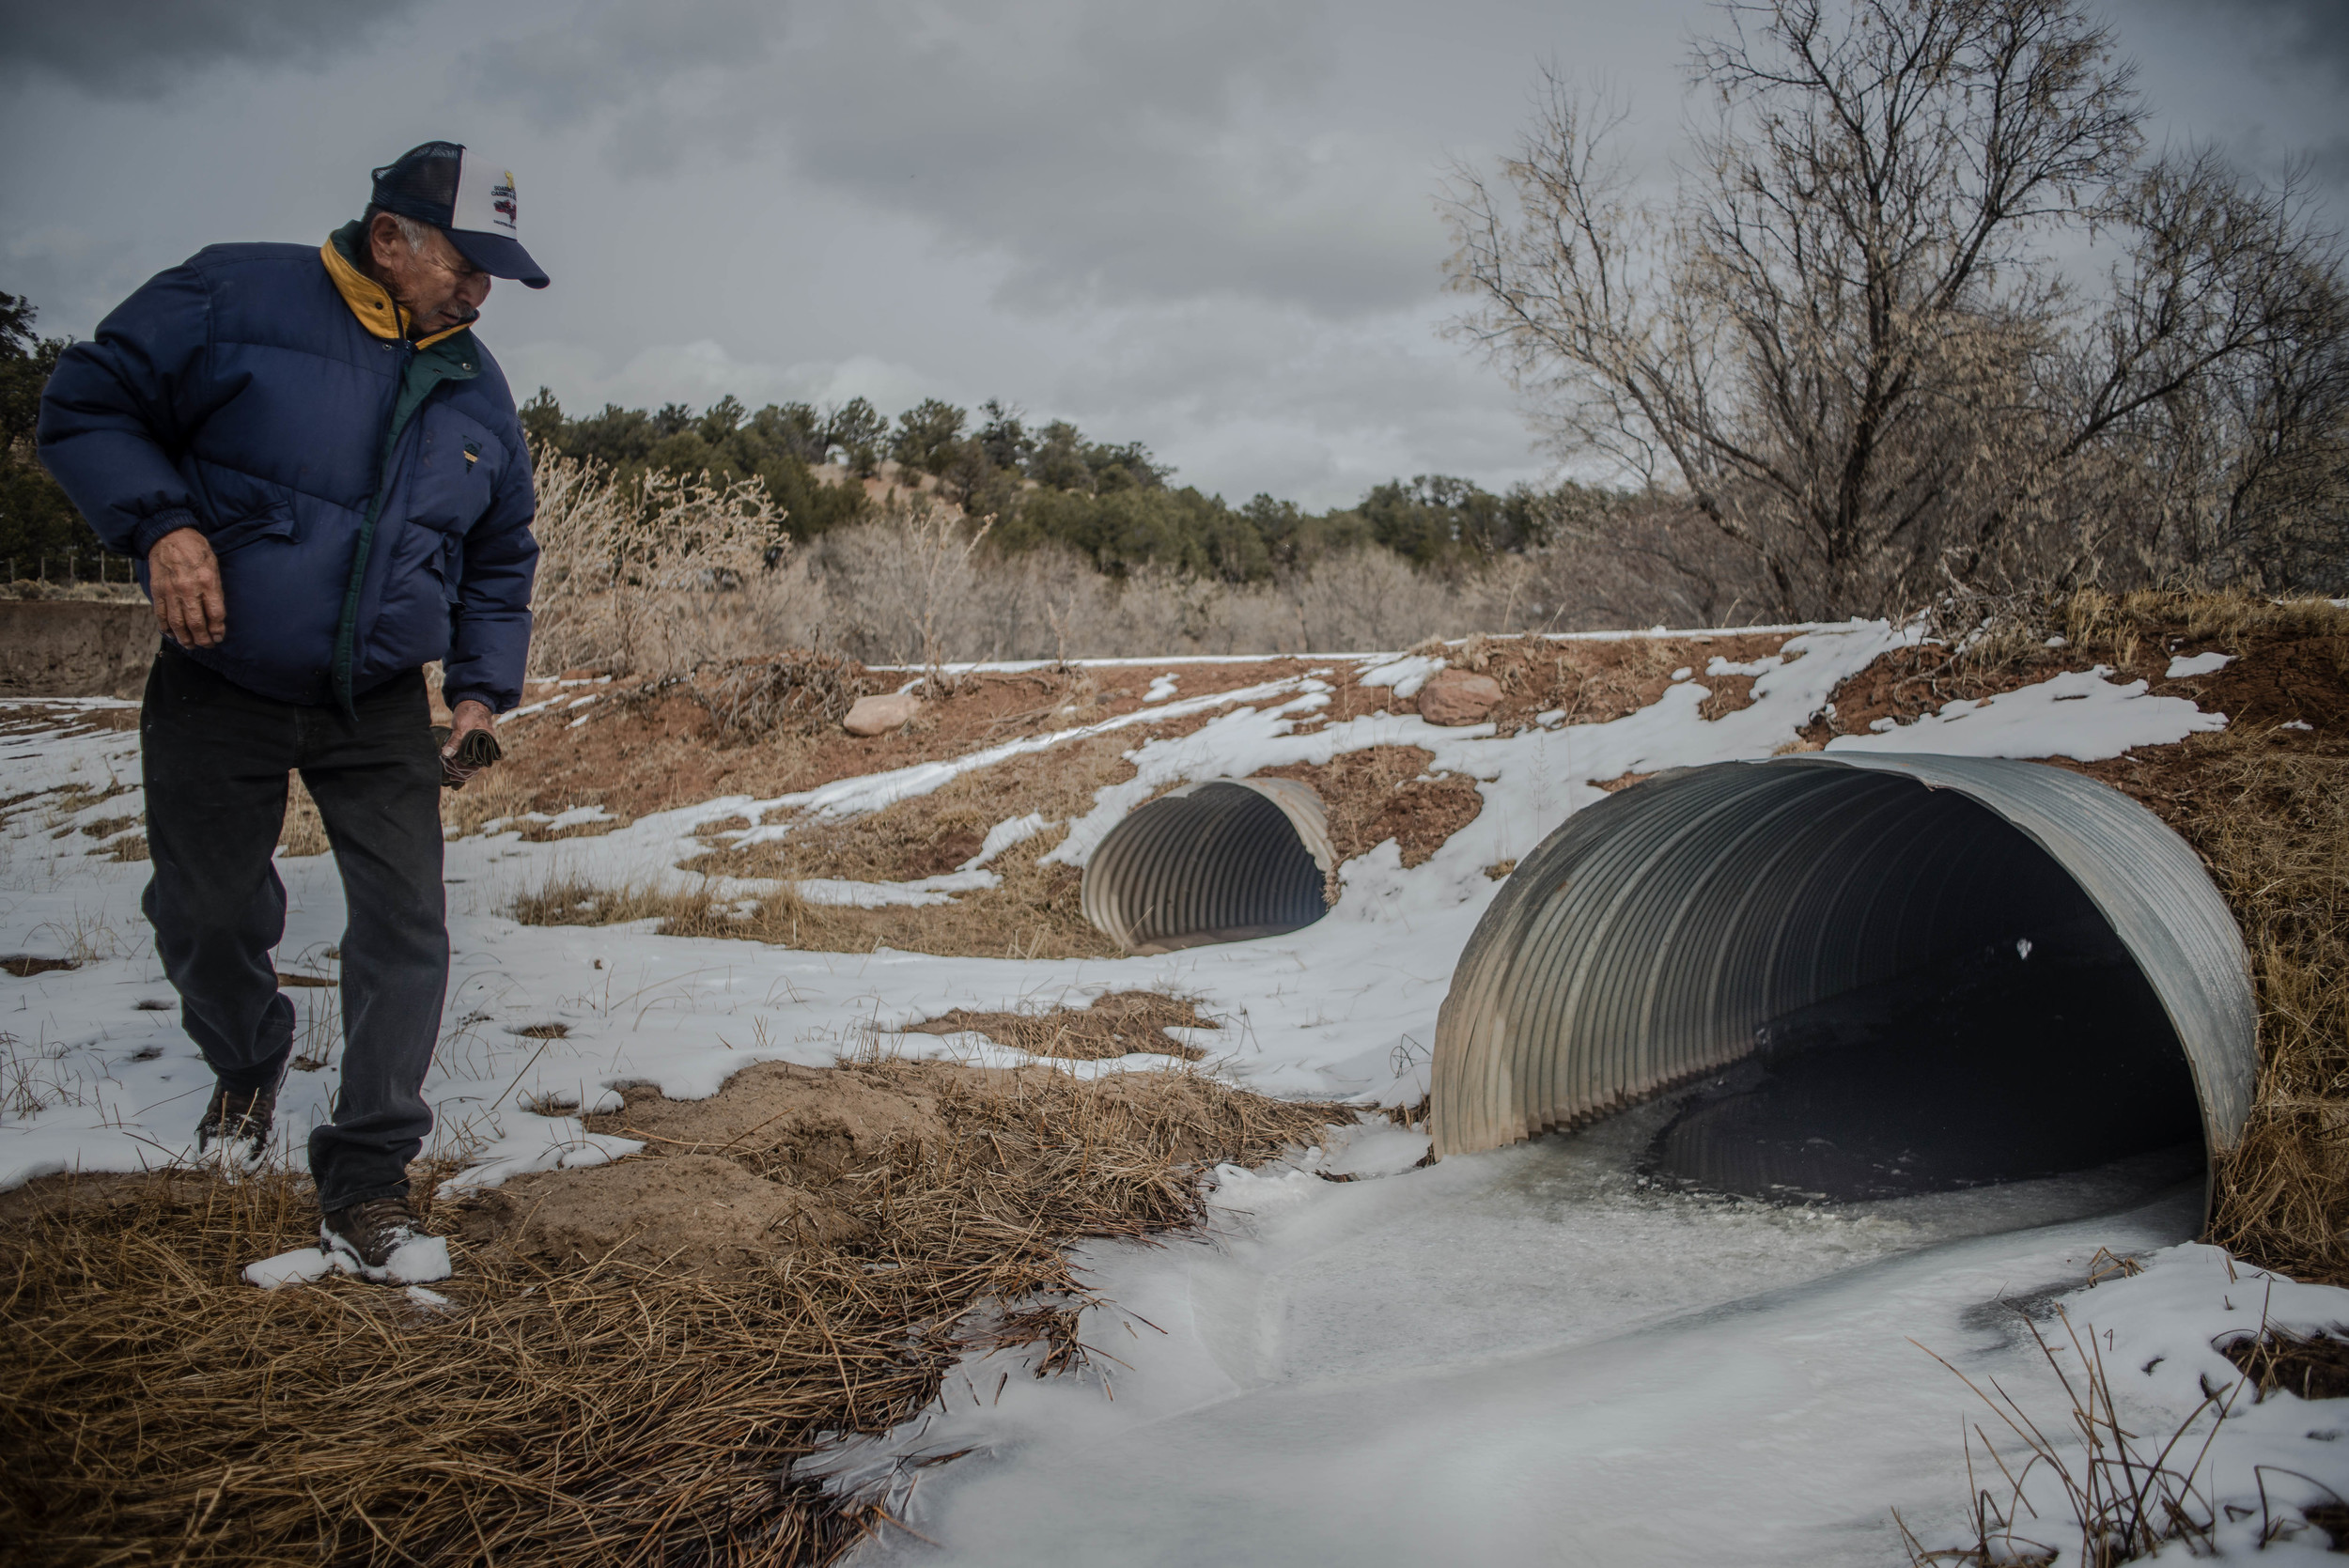 Resident Franklin Mose peers into a culvert where a 13-month-old child was found Jan. 31 in Crystal. A mother and her child were left near the culvert late at night Jan. 30 after the mother got into a fight with a woman with whom she was riding in a truck, according to the woman's uncle. (Roberto E. Rosales/Albuquerque Journal)